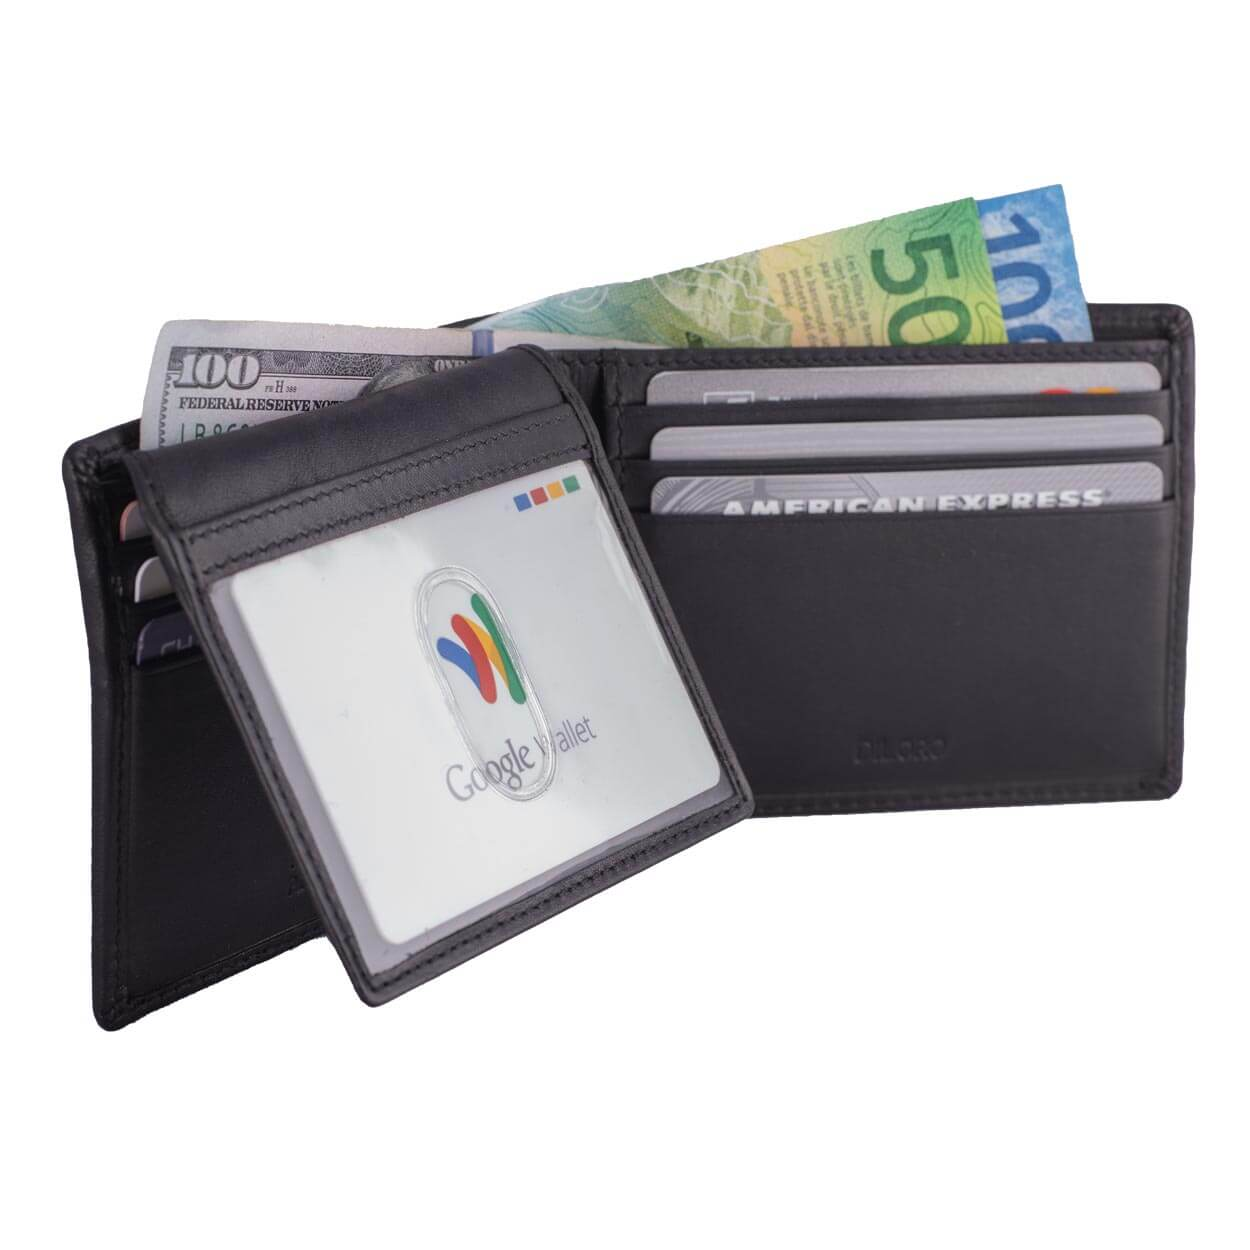 DiLoro Men's Leather Wallet Bifold 2 ID Windows RFID Protection -  Napa Black Flip ID Halfway Down